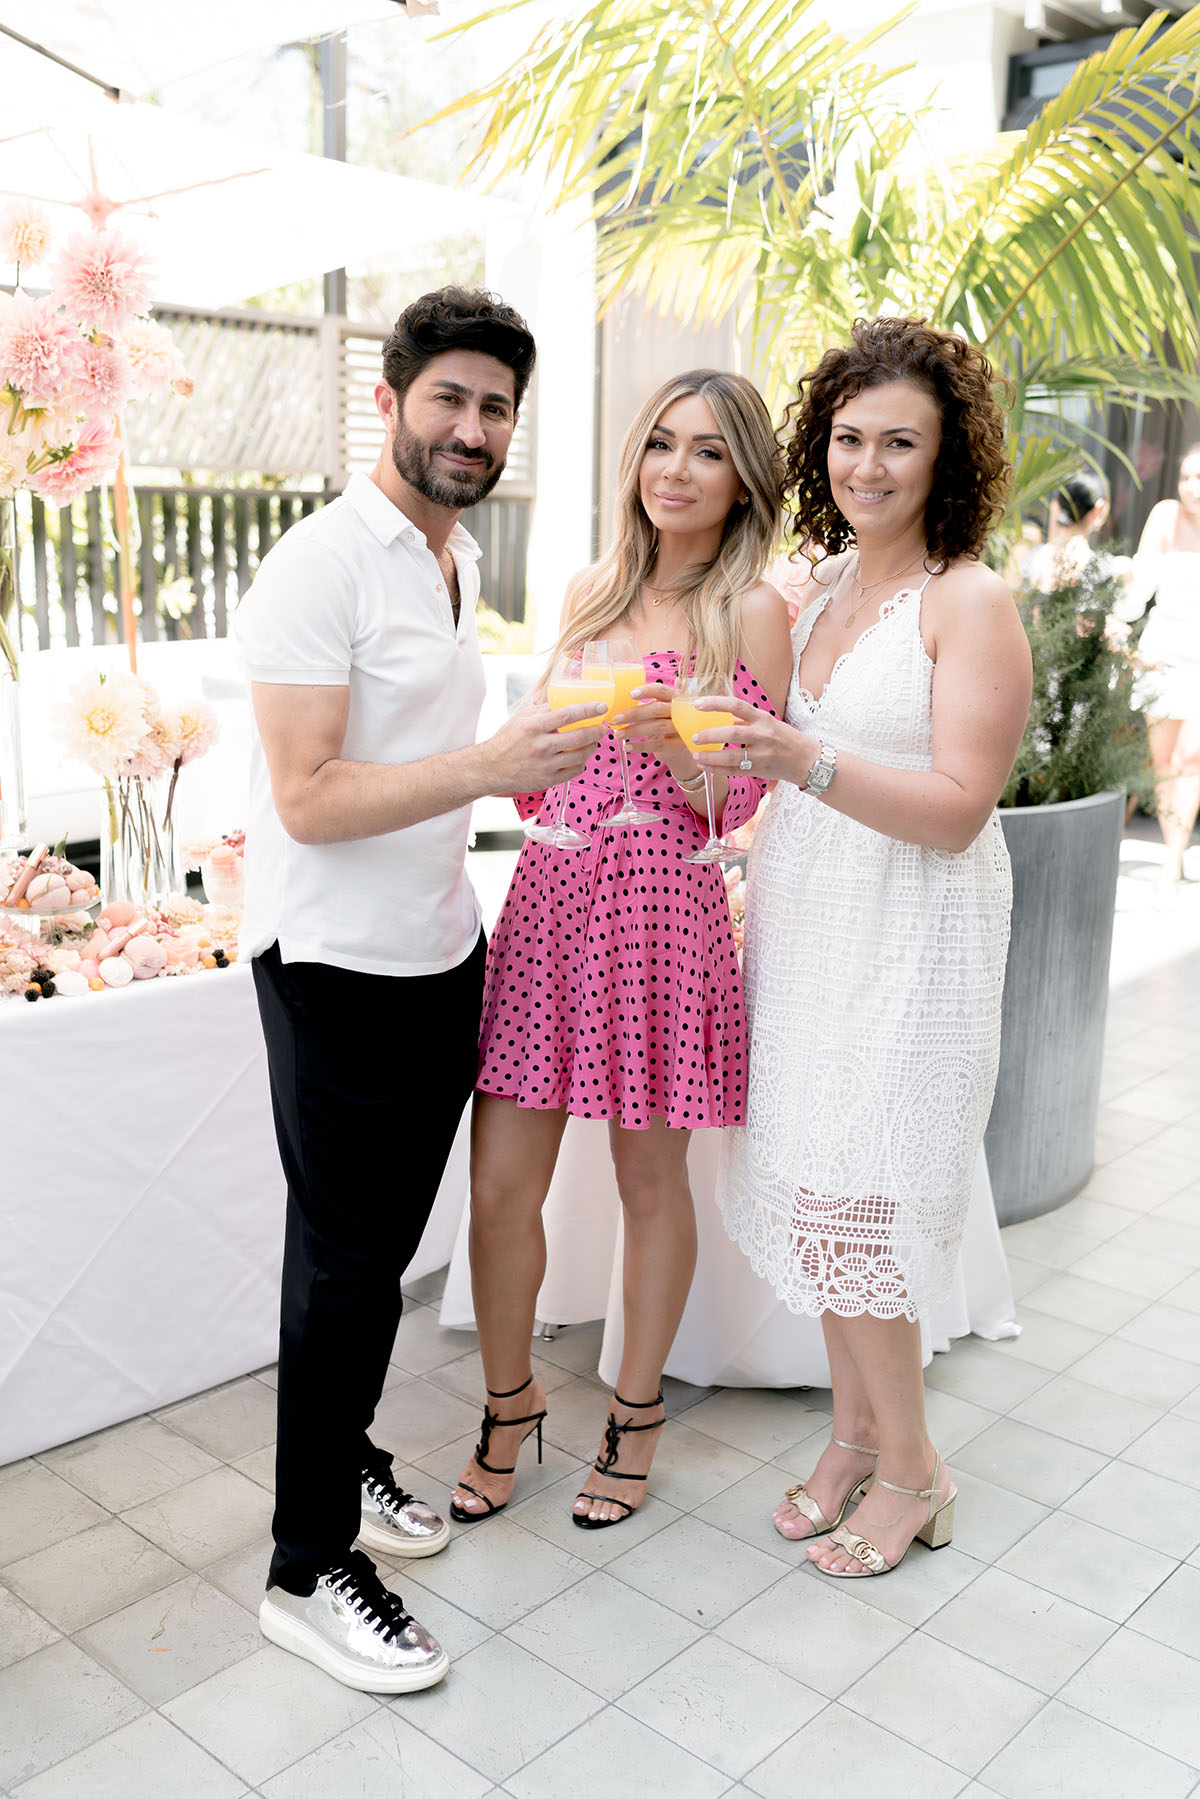 Eddie Zaratsian, Lilit Cardanian and Shushan Darzian at the Elcie Cosmetics Lip Linyl launch party, photo by RTG Photography